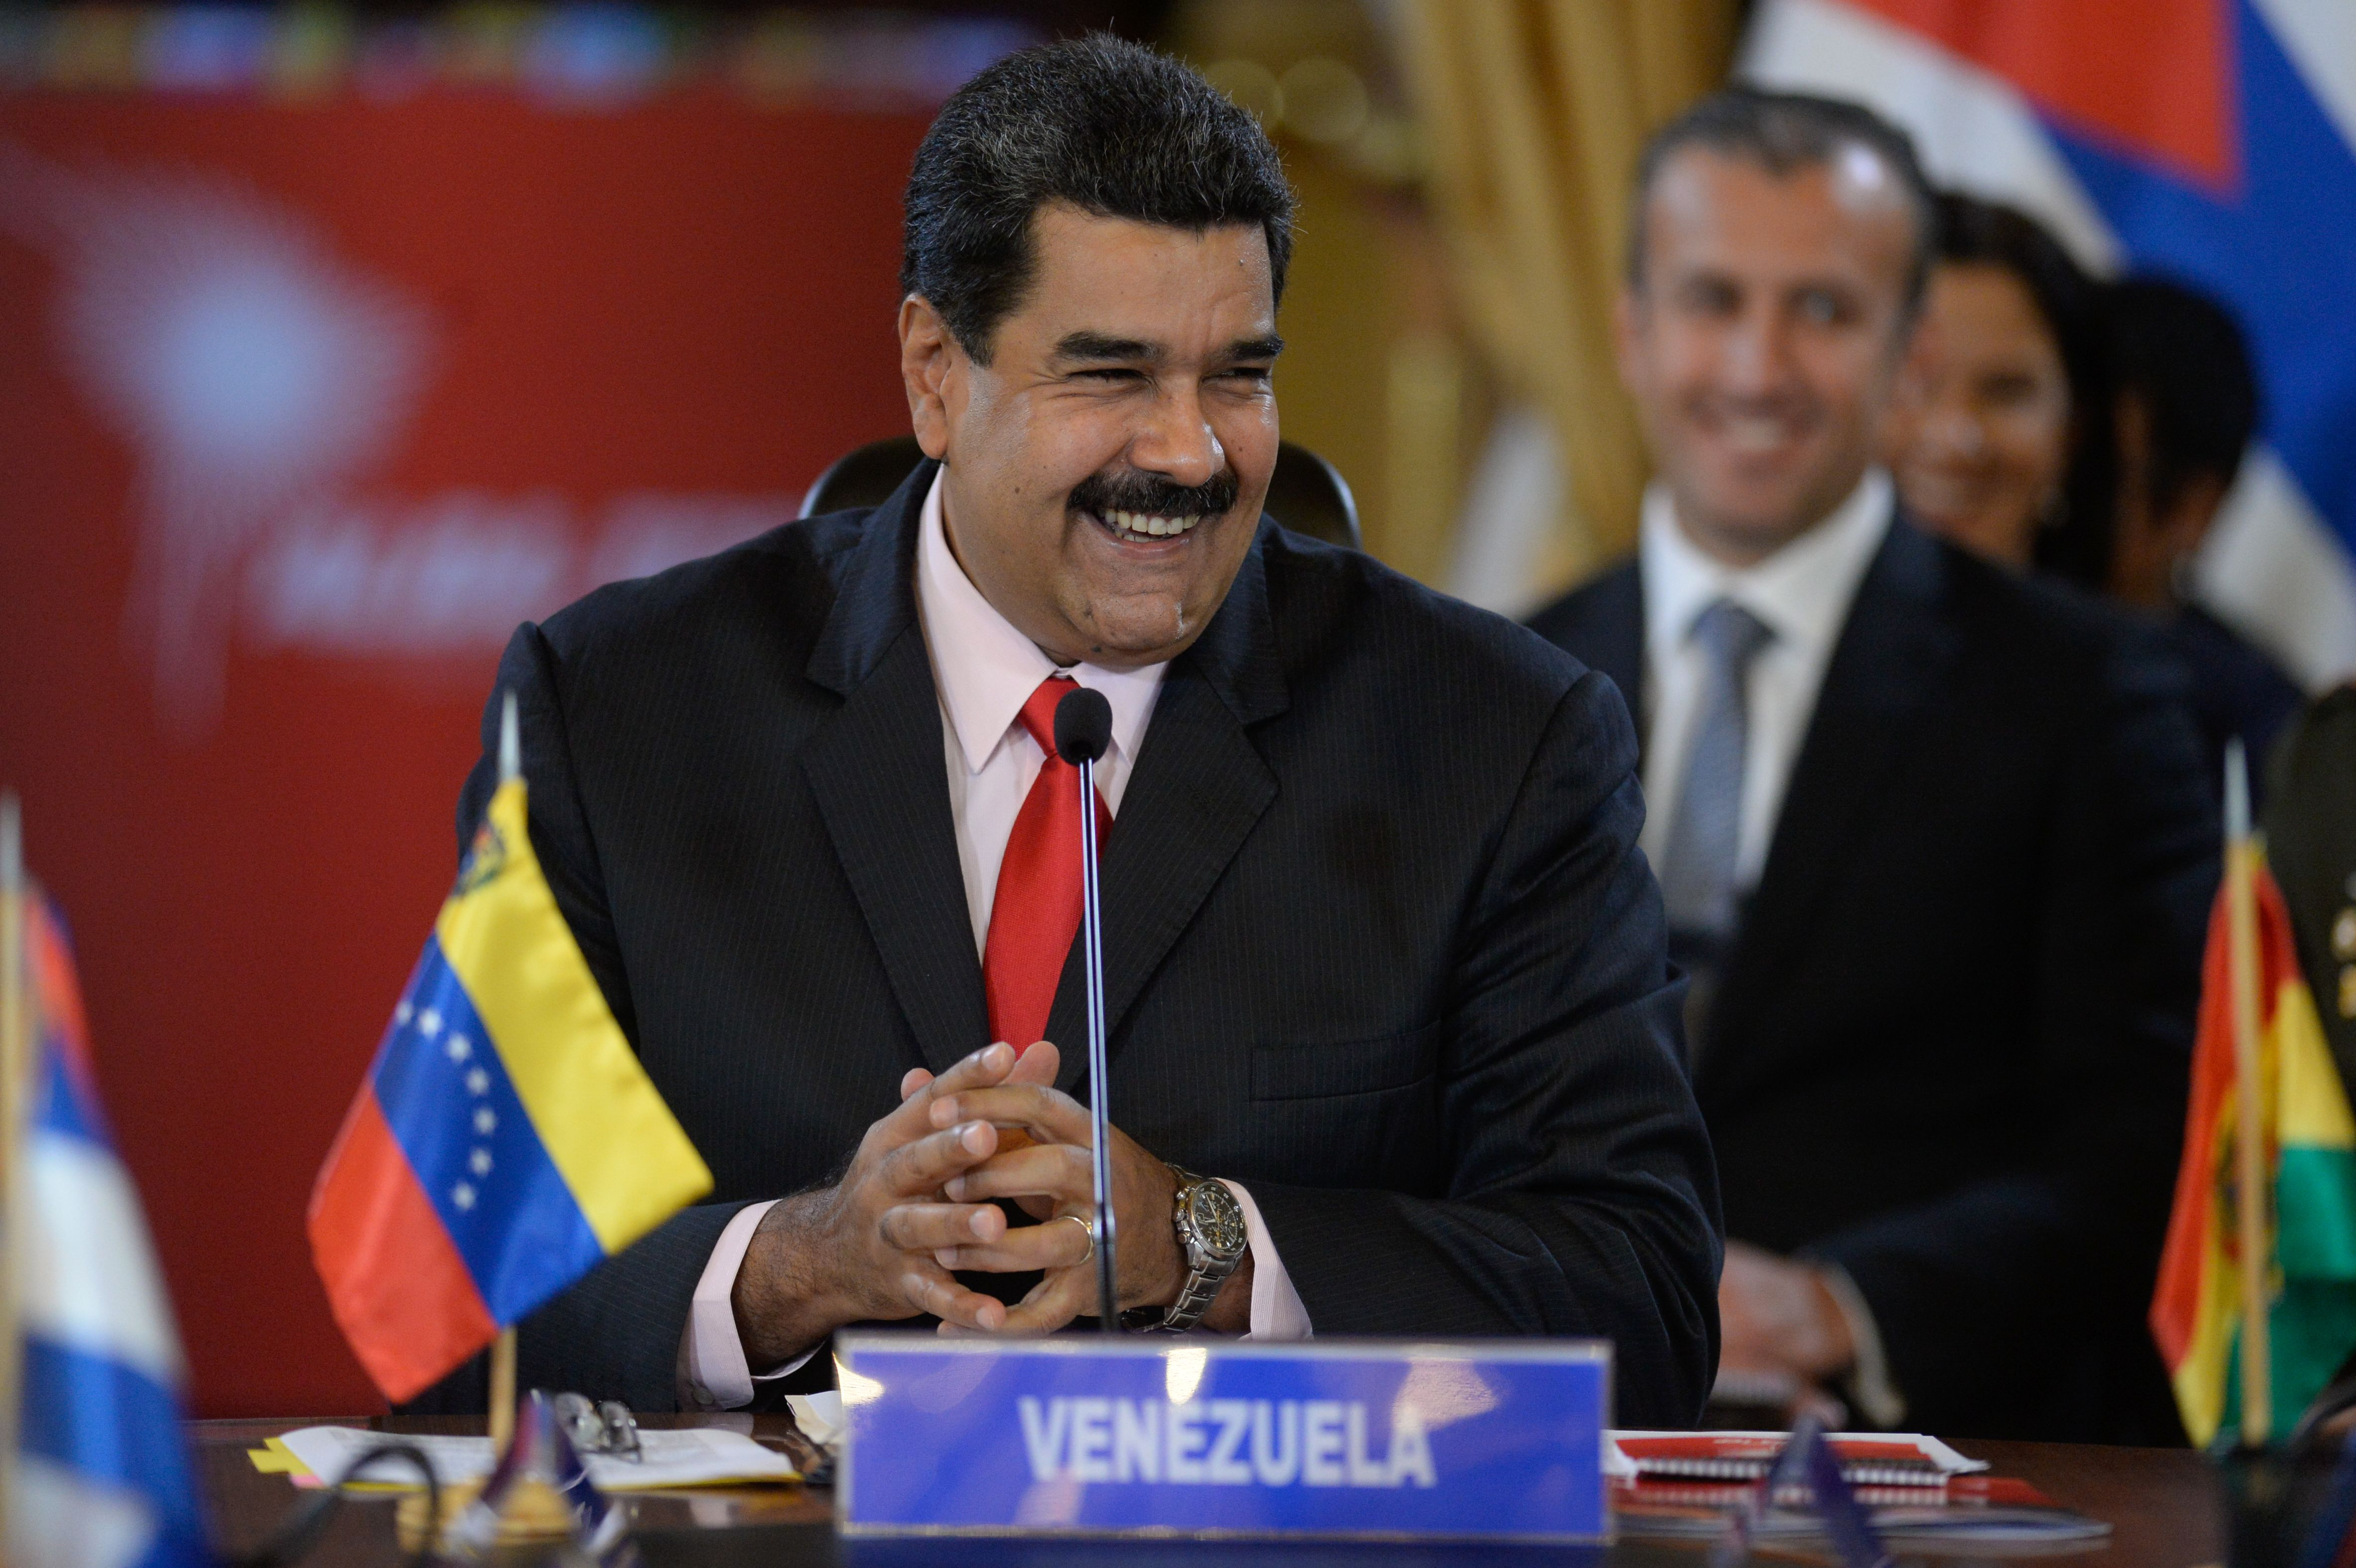 Venezuelan President Nicolas Maduro smiles while giving a speech at the Miraflores presidential palace in Caracas on March 5, 2017.